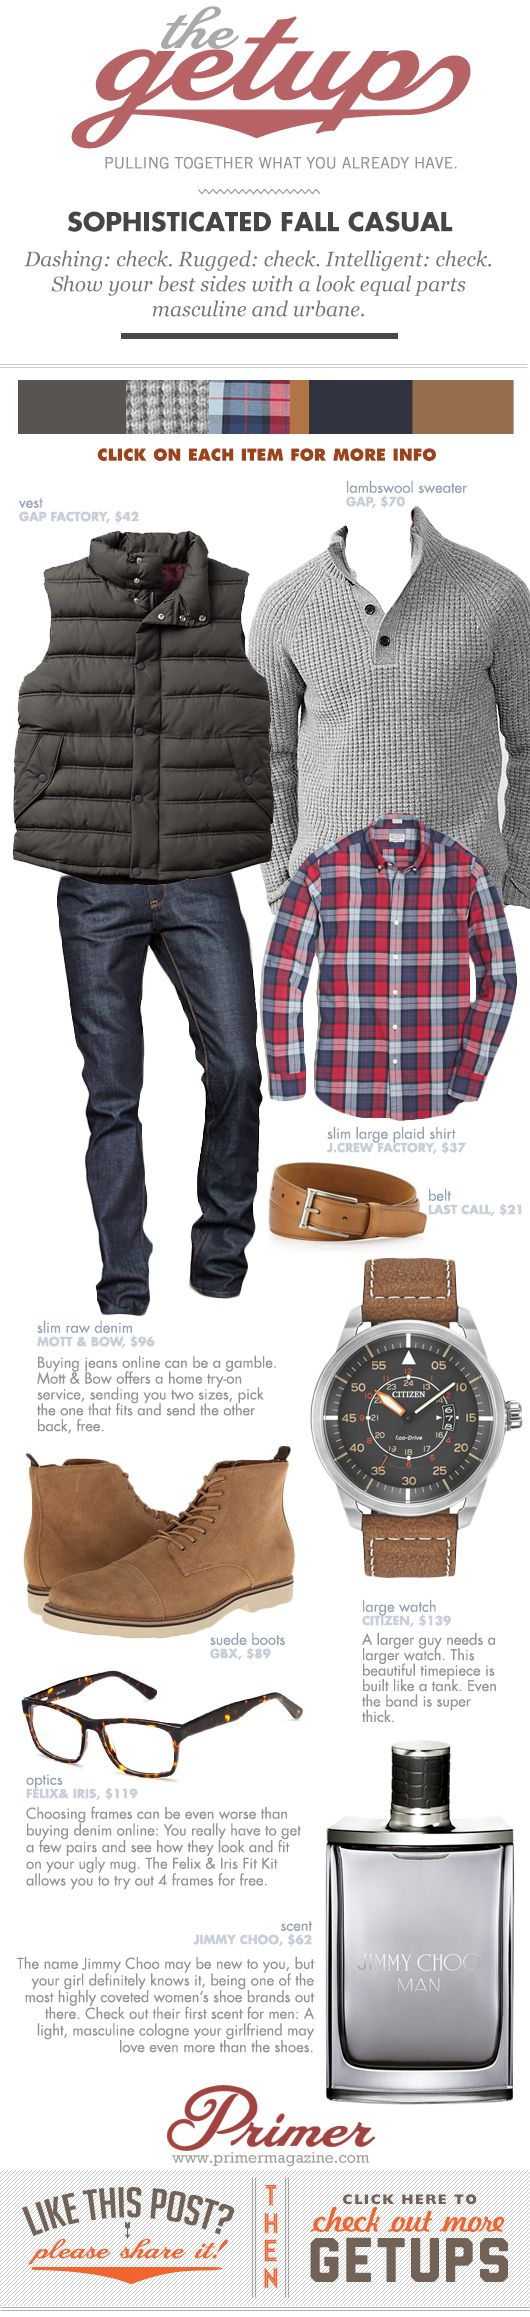 The Getup: Sophisticated Fall Casual - Primer